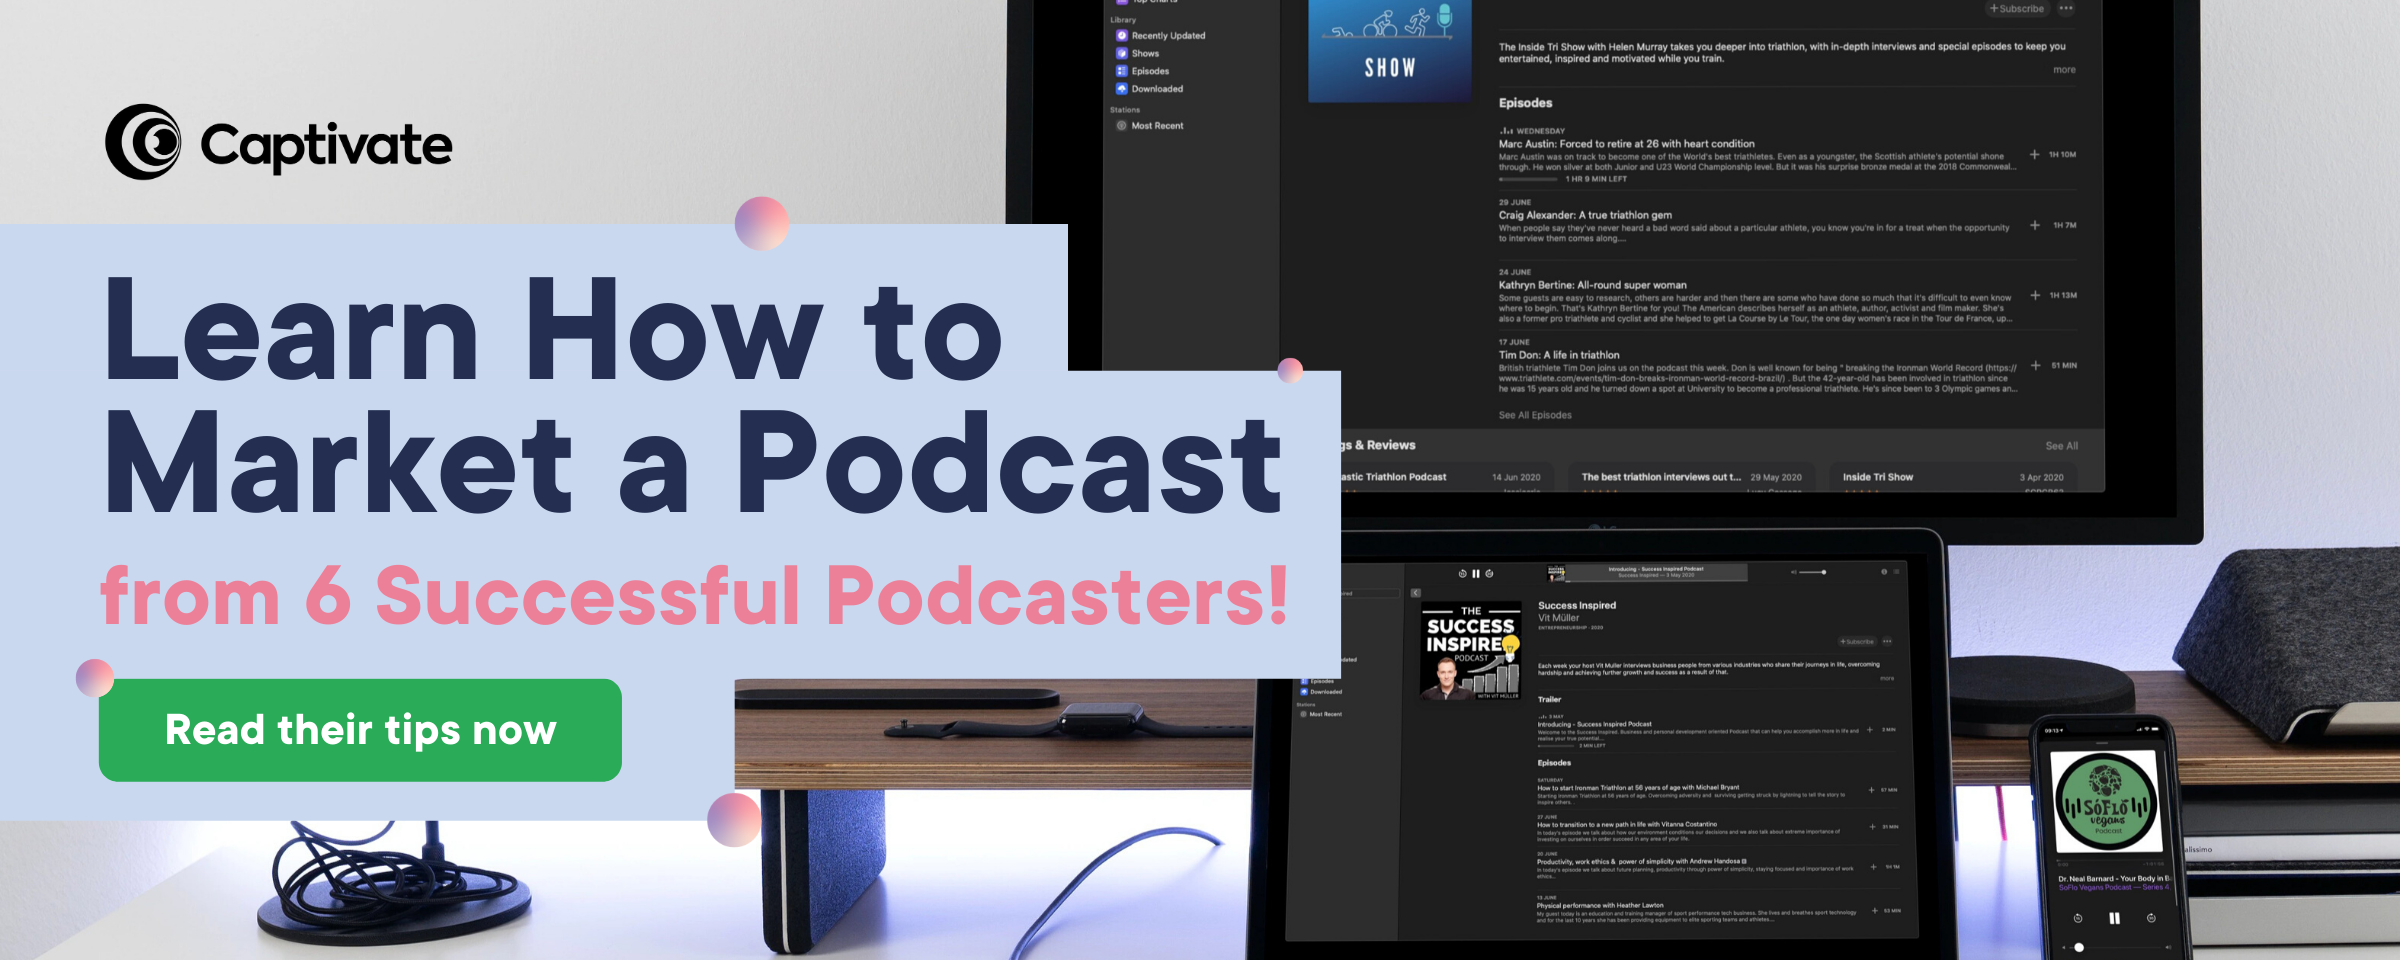 6 Podcasters Share How to Market a Podcast Read More